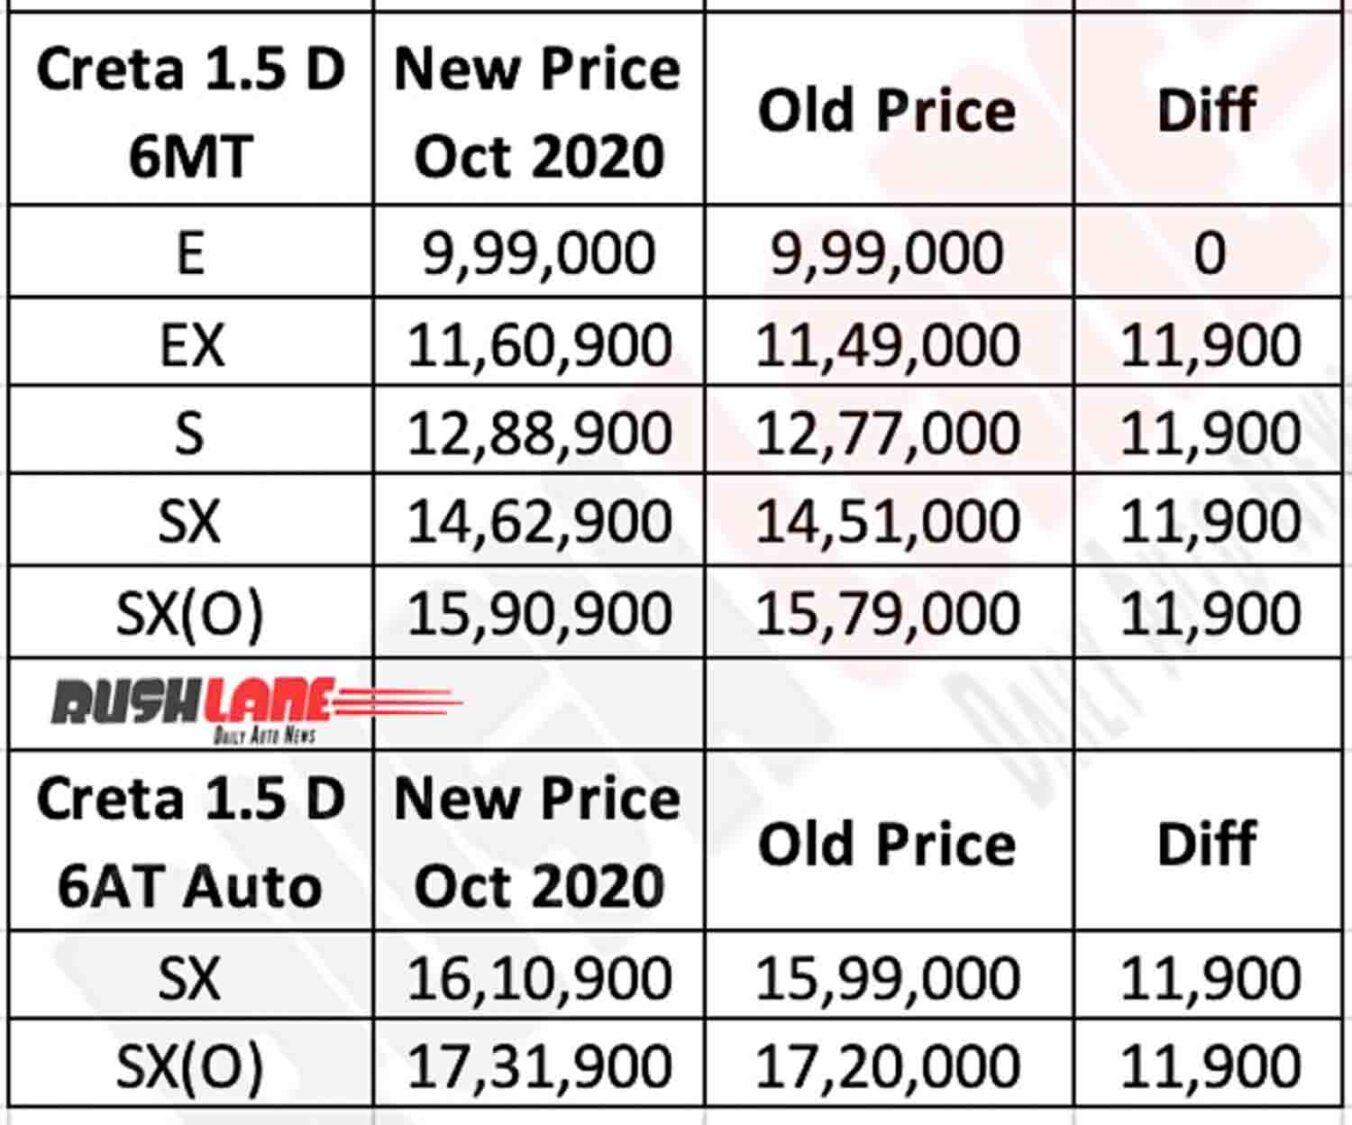 2020 Hyundai Creta Diesel Prices - Oct 2020